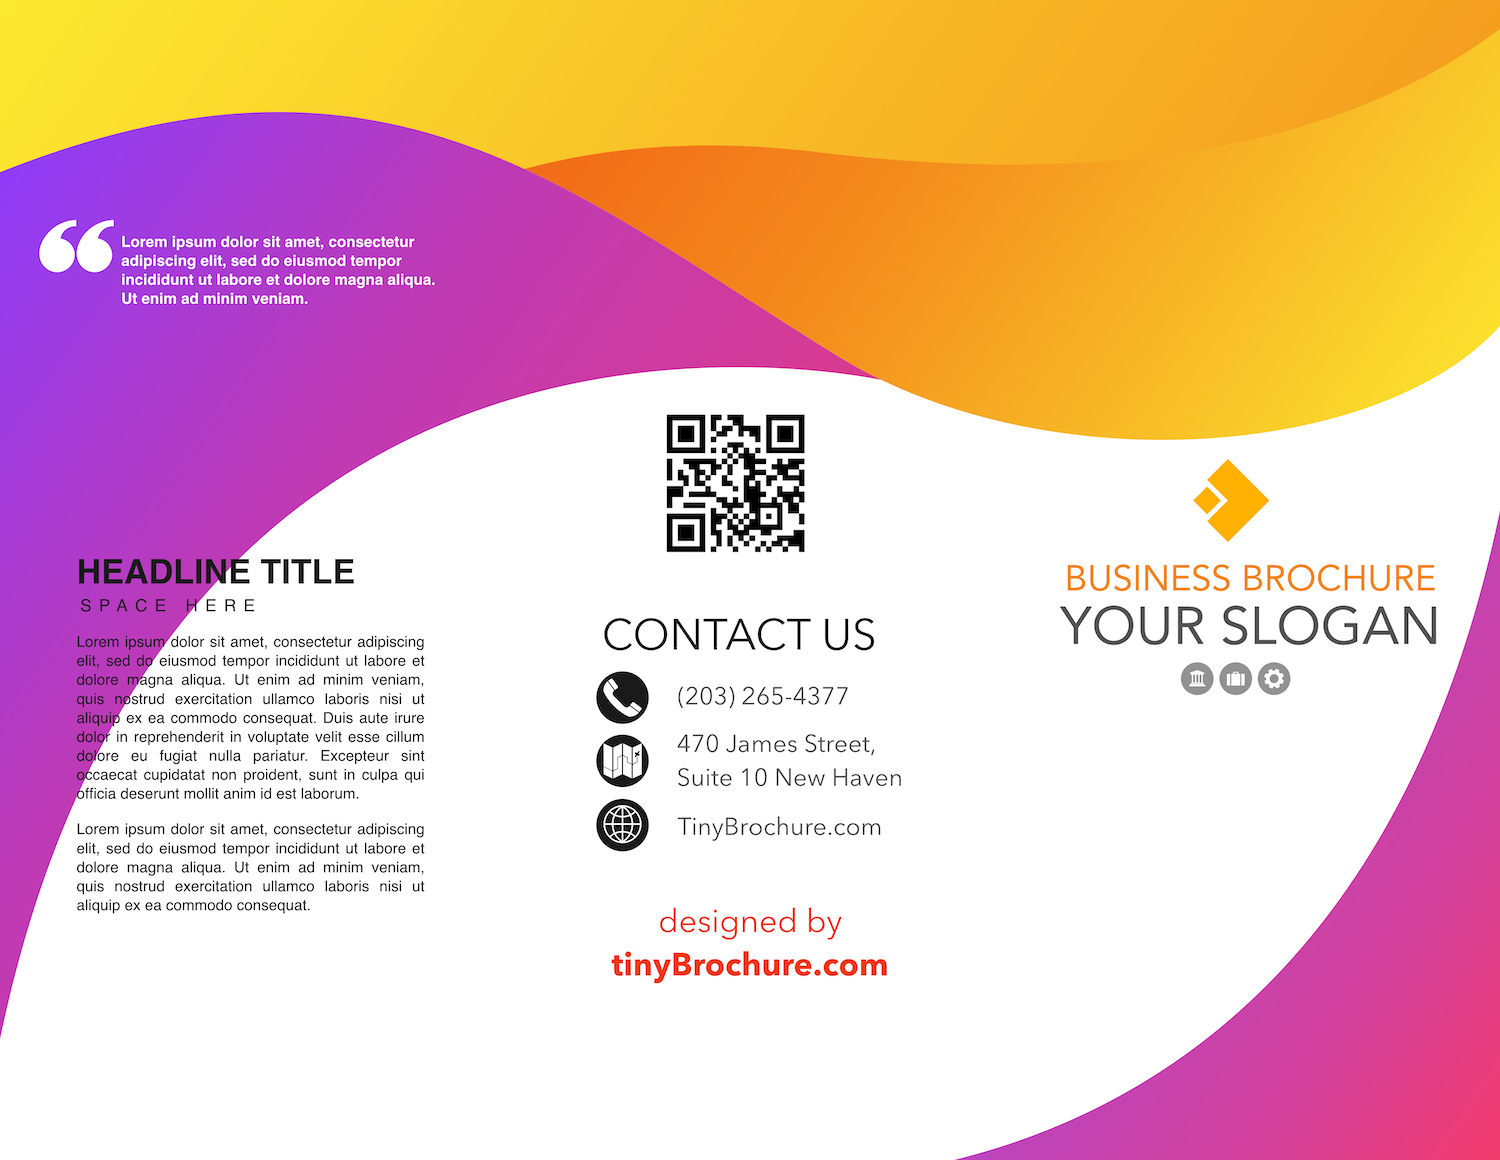 017 Brochure Templates Google Drive Template Ideas Country Intended For Google Drive Templates Brochure